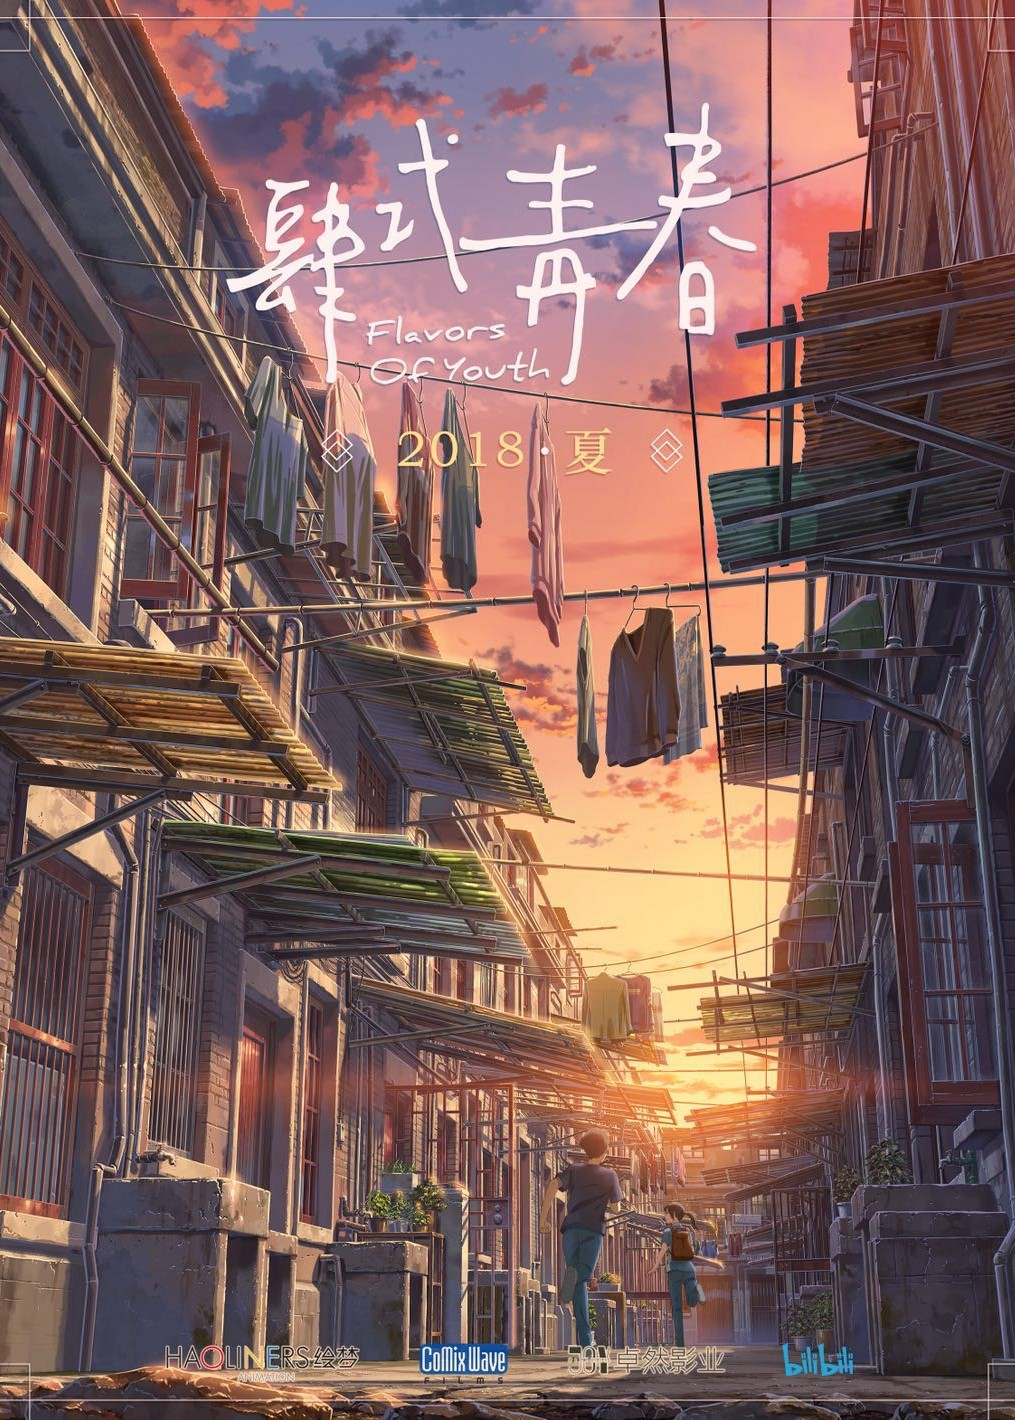 flavors of youth 1080p